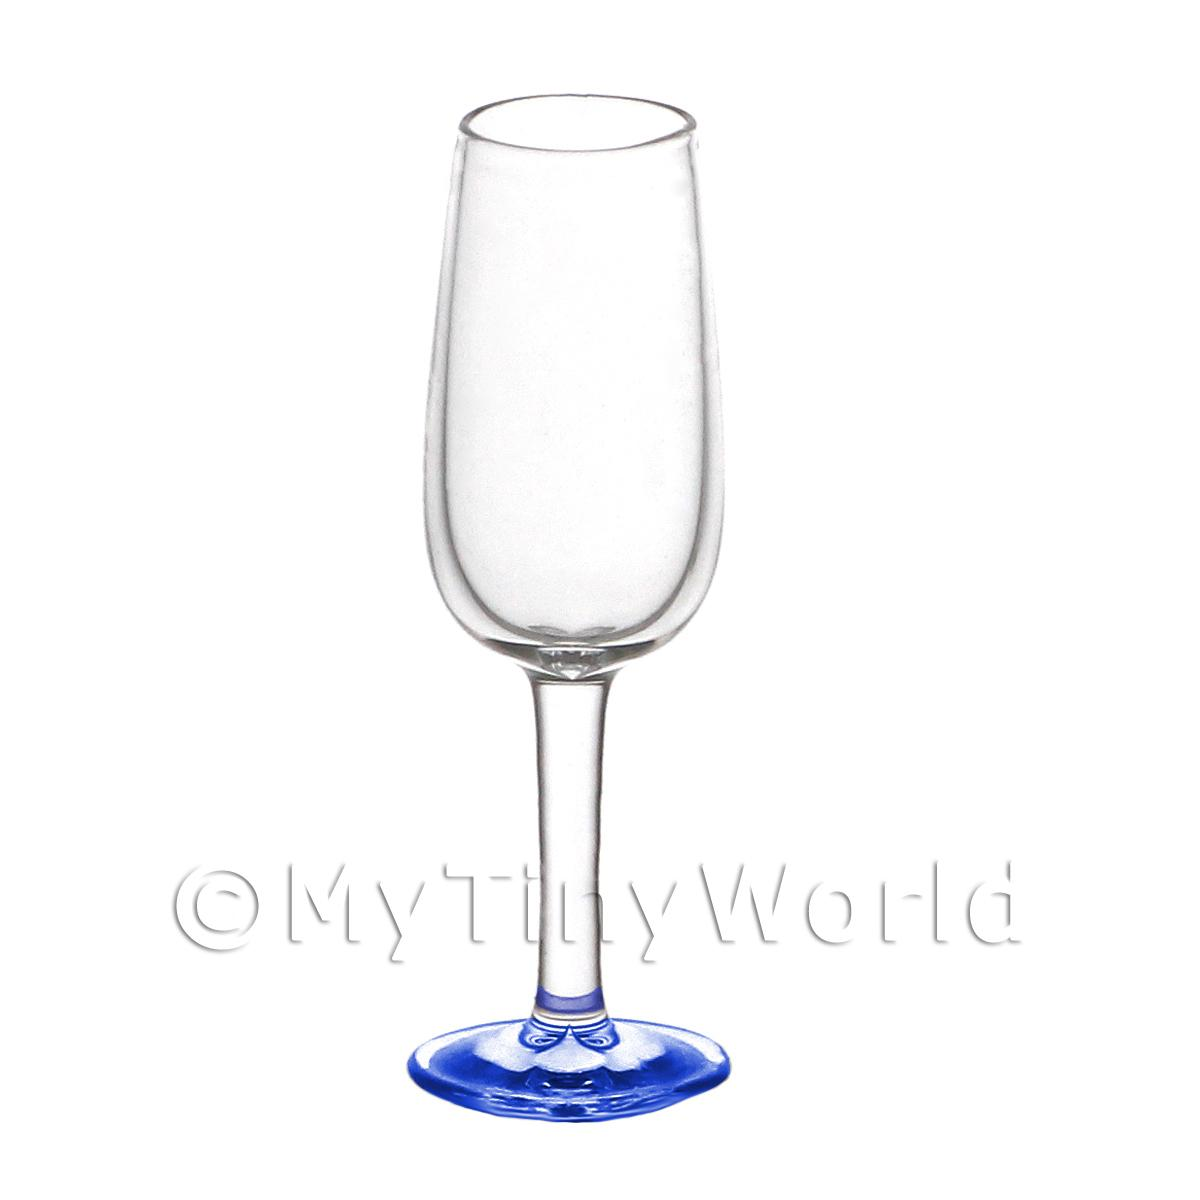 Dolls House Miniature Handmade Narrow Neck Blue Based Wine Glass